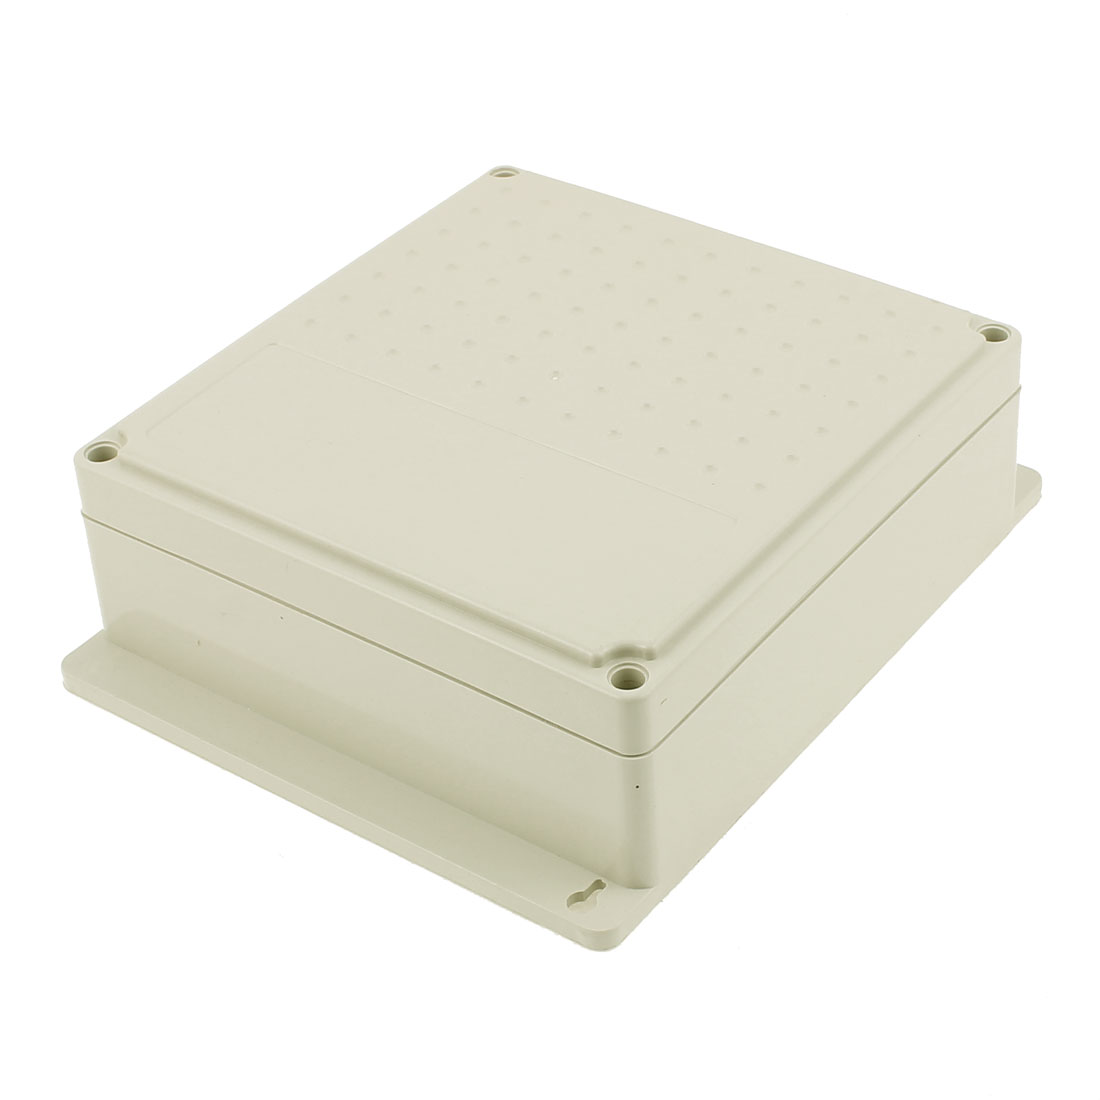 230-x-190-x-70mm-Waterproof-Junction-Box-DIY-Terminal-Connecting-Box-Enclosure